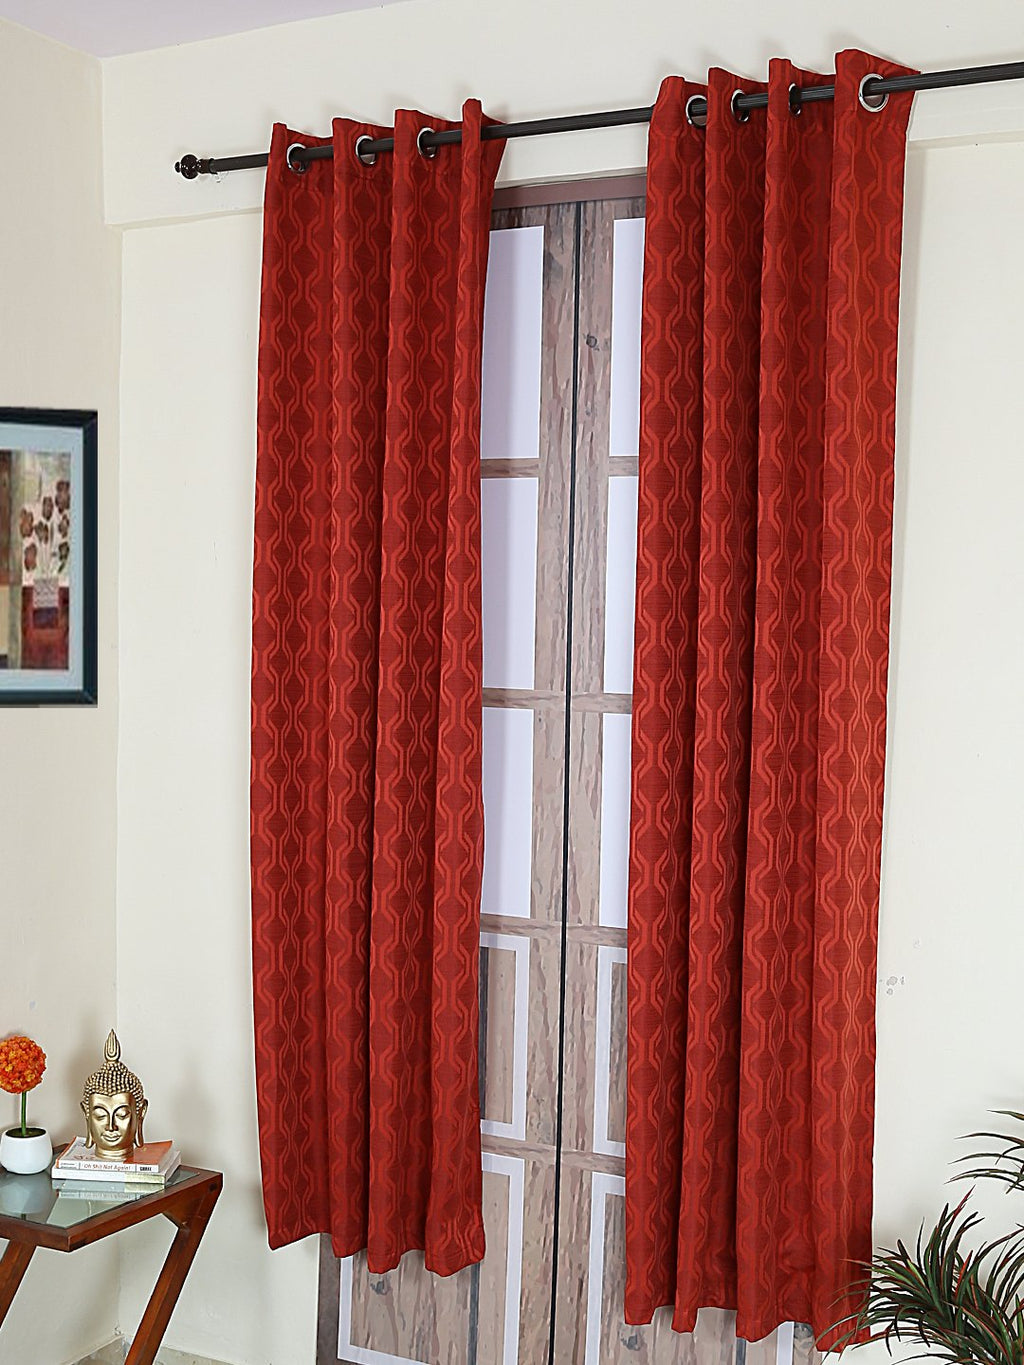 RANGRAGE 1 Piece Eyelet Polyester Door Curtain, 7ft, Red